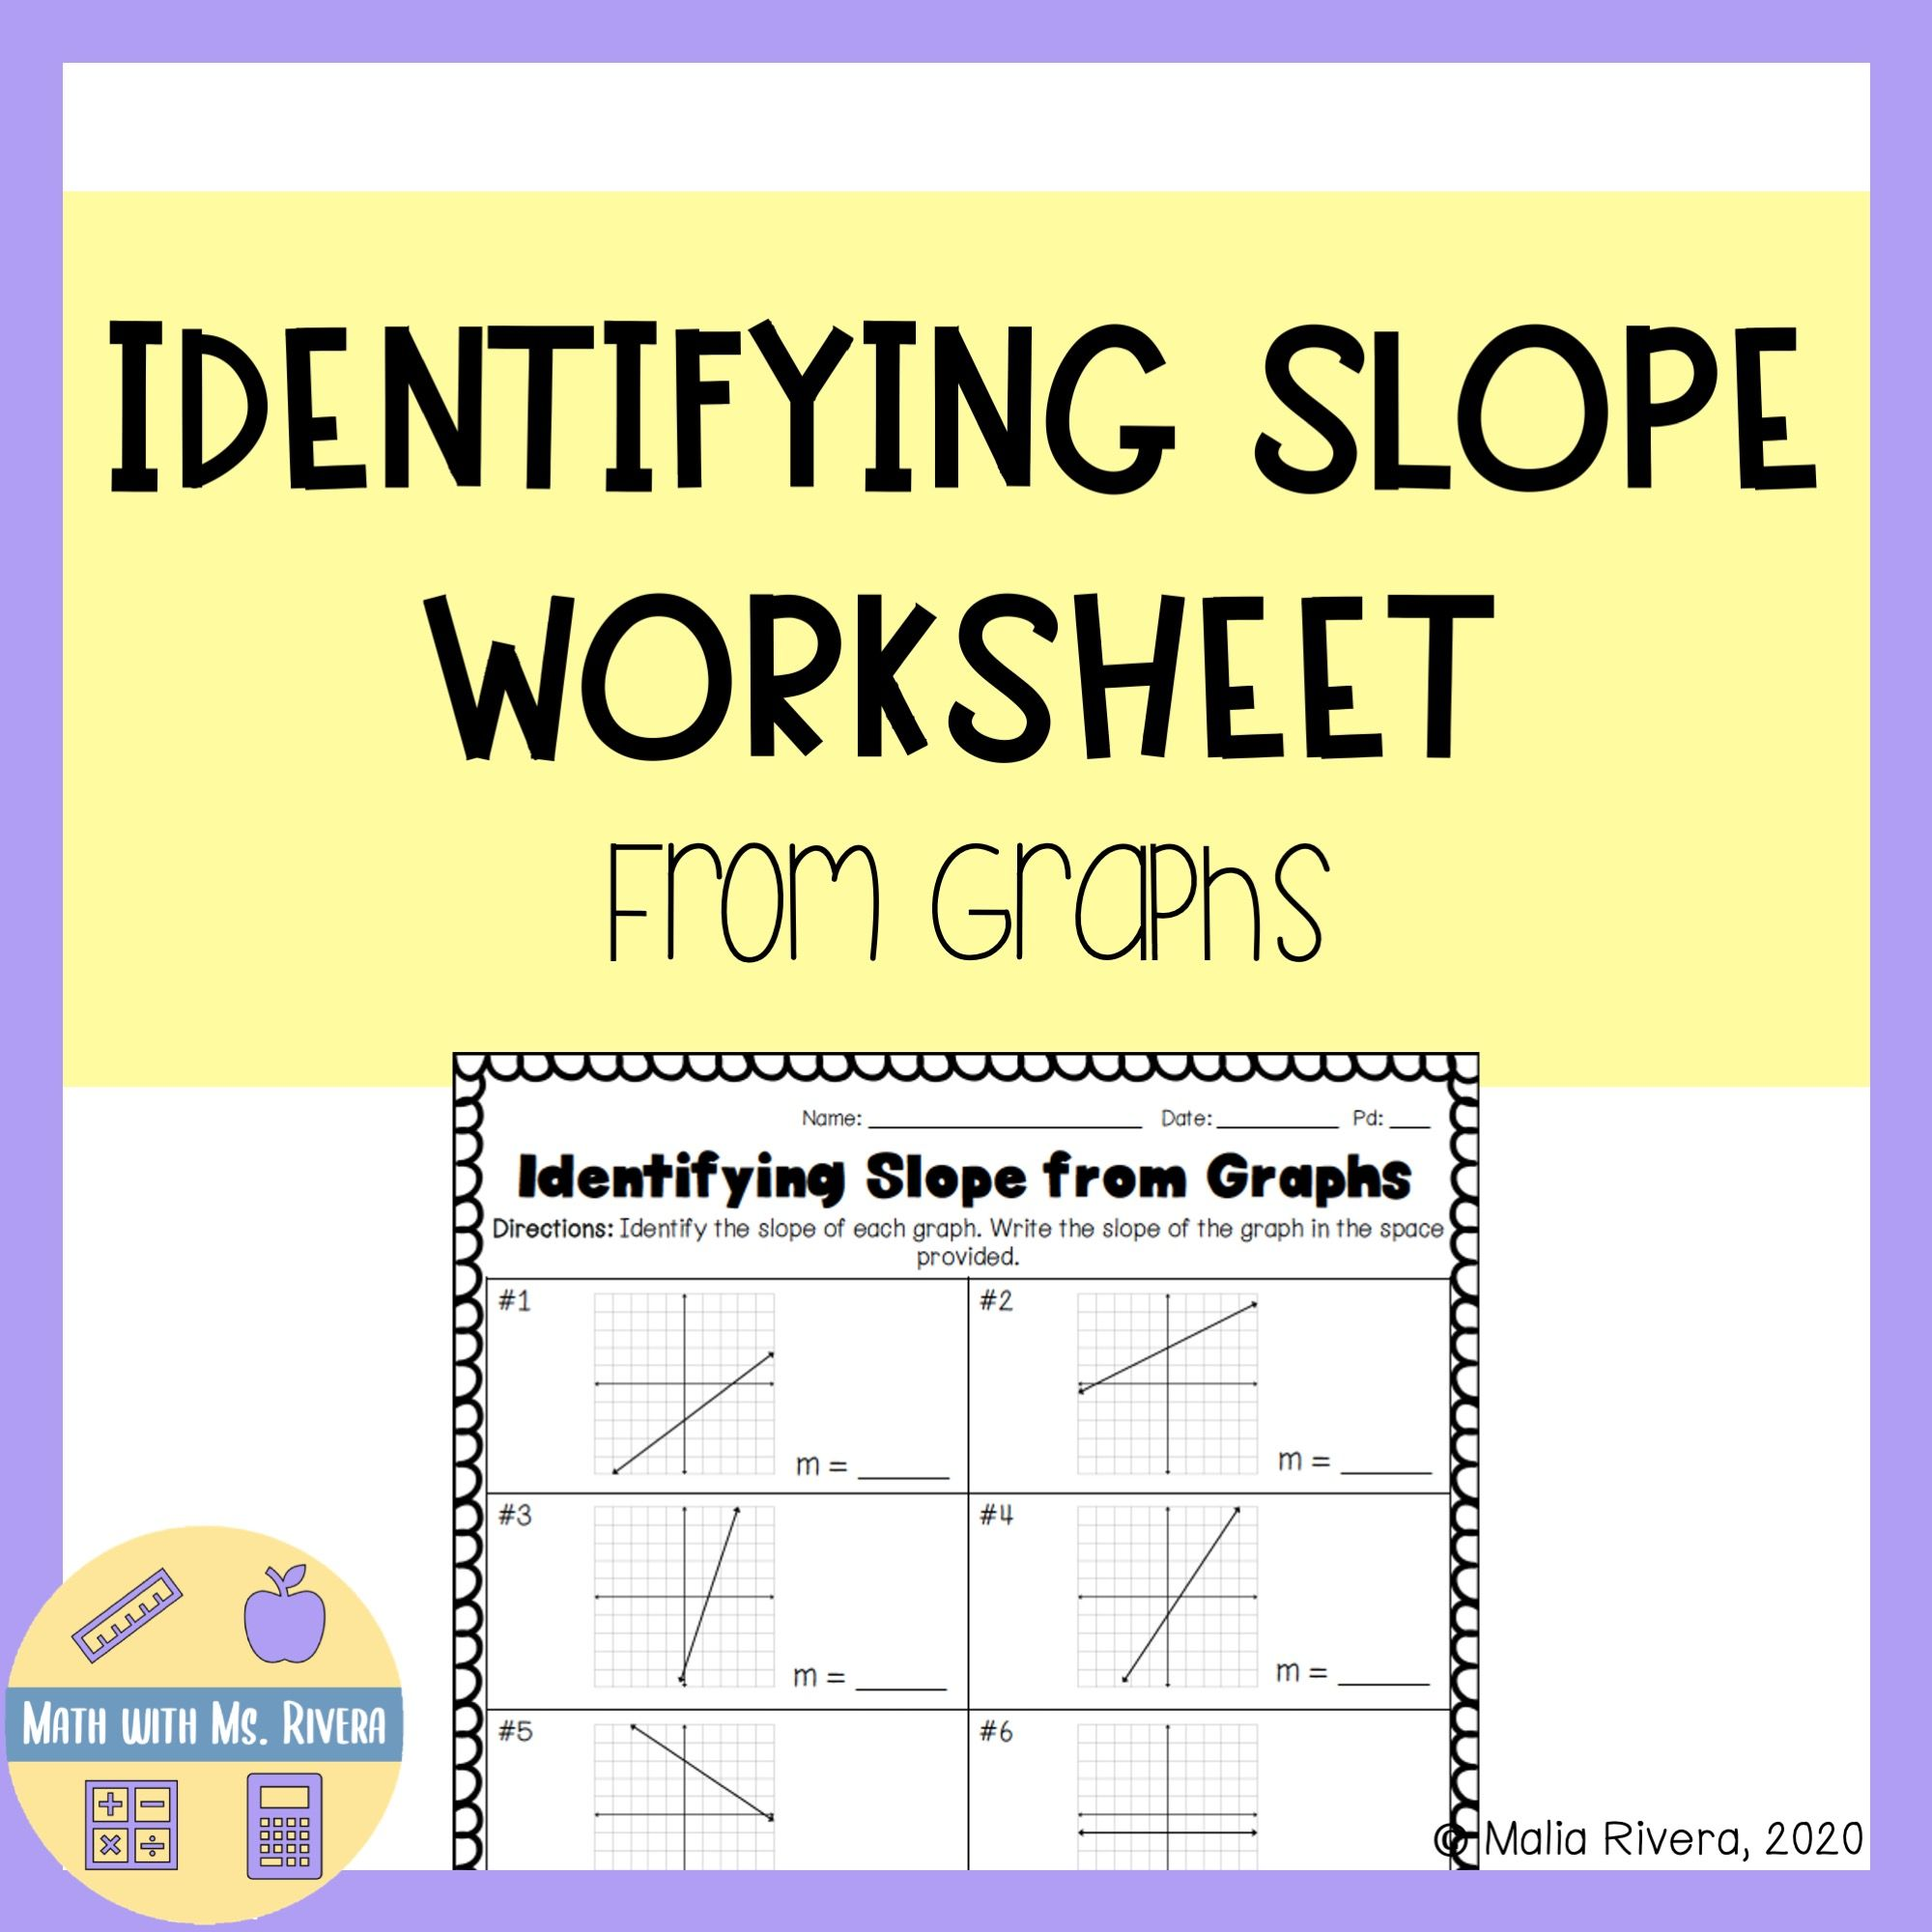 hight resolution of Identifying Slope from Graphs Worksheet   Graphing worksheets